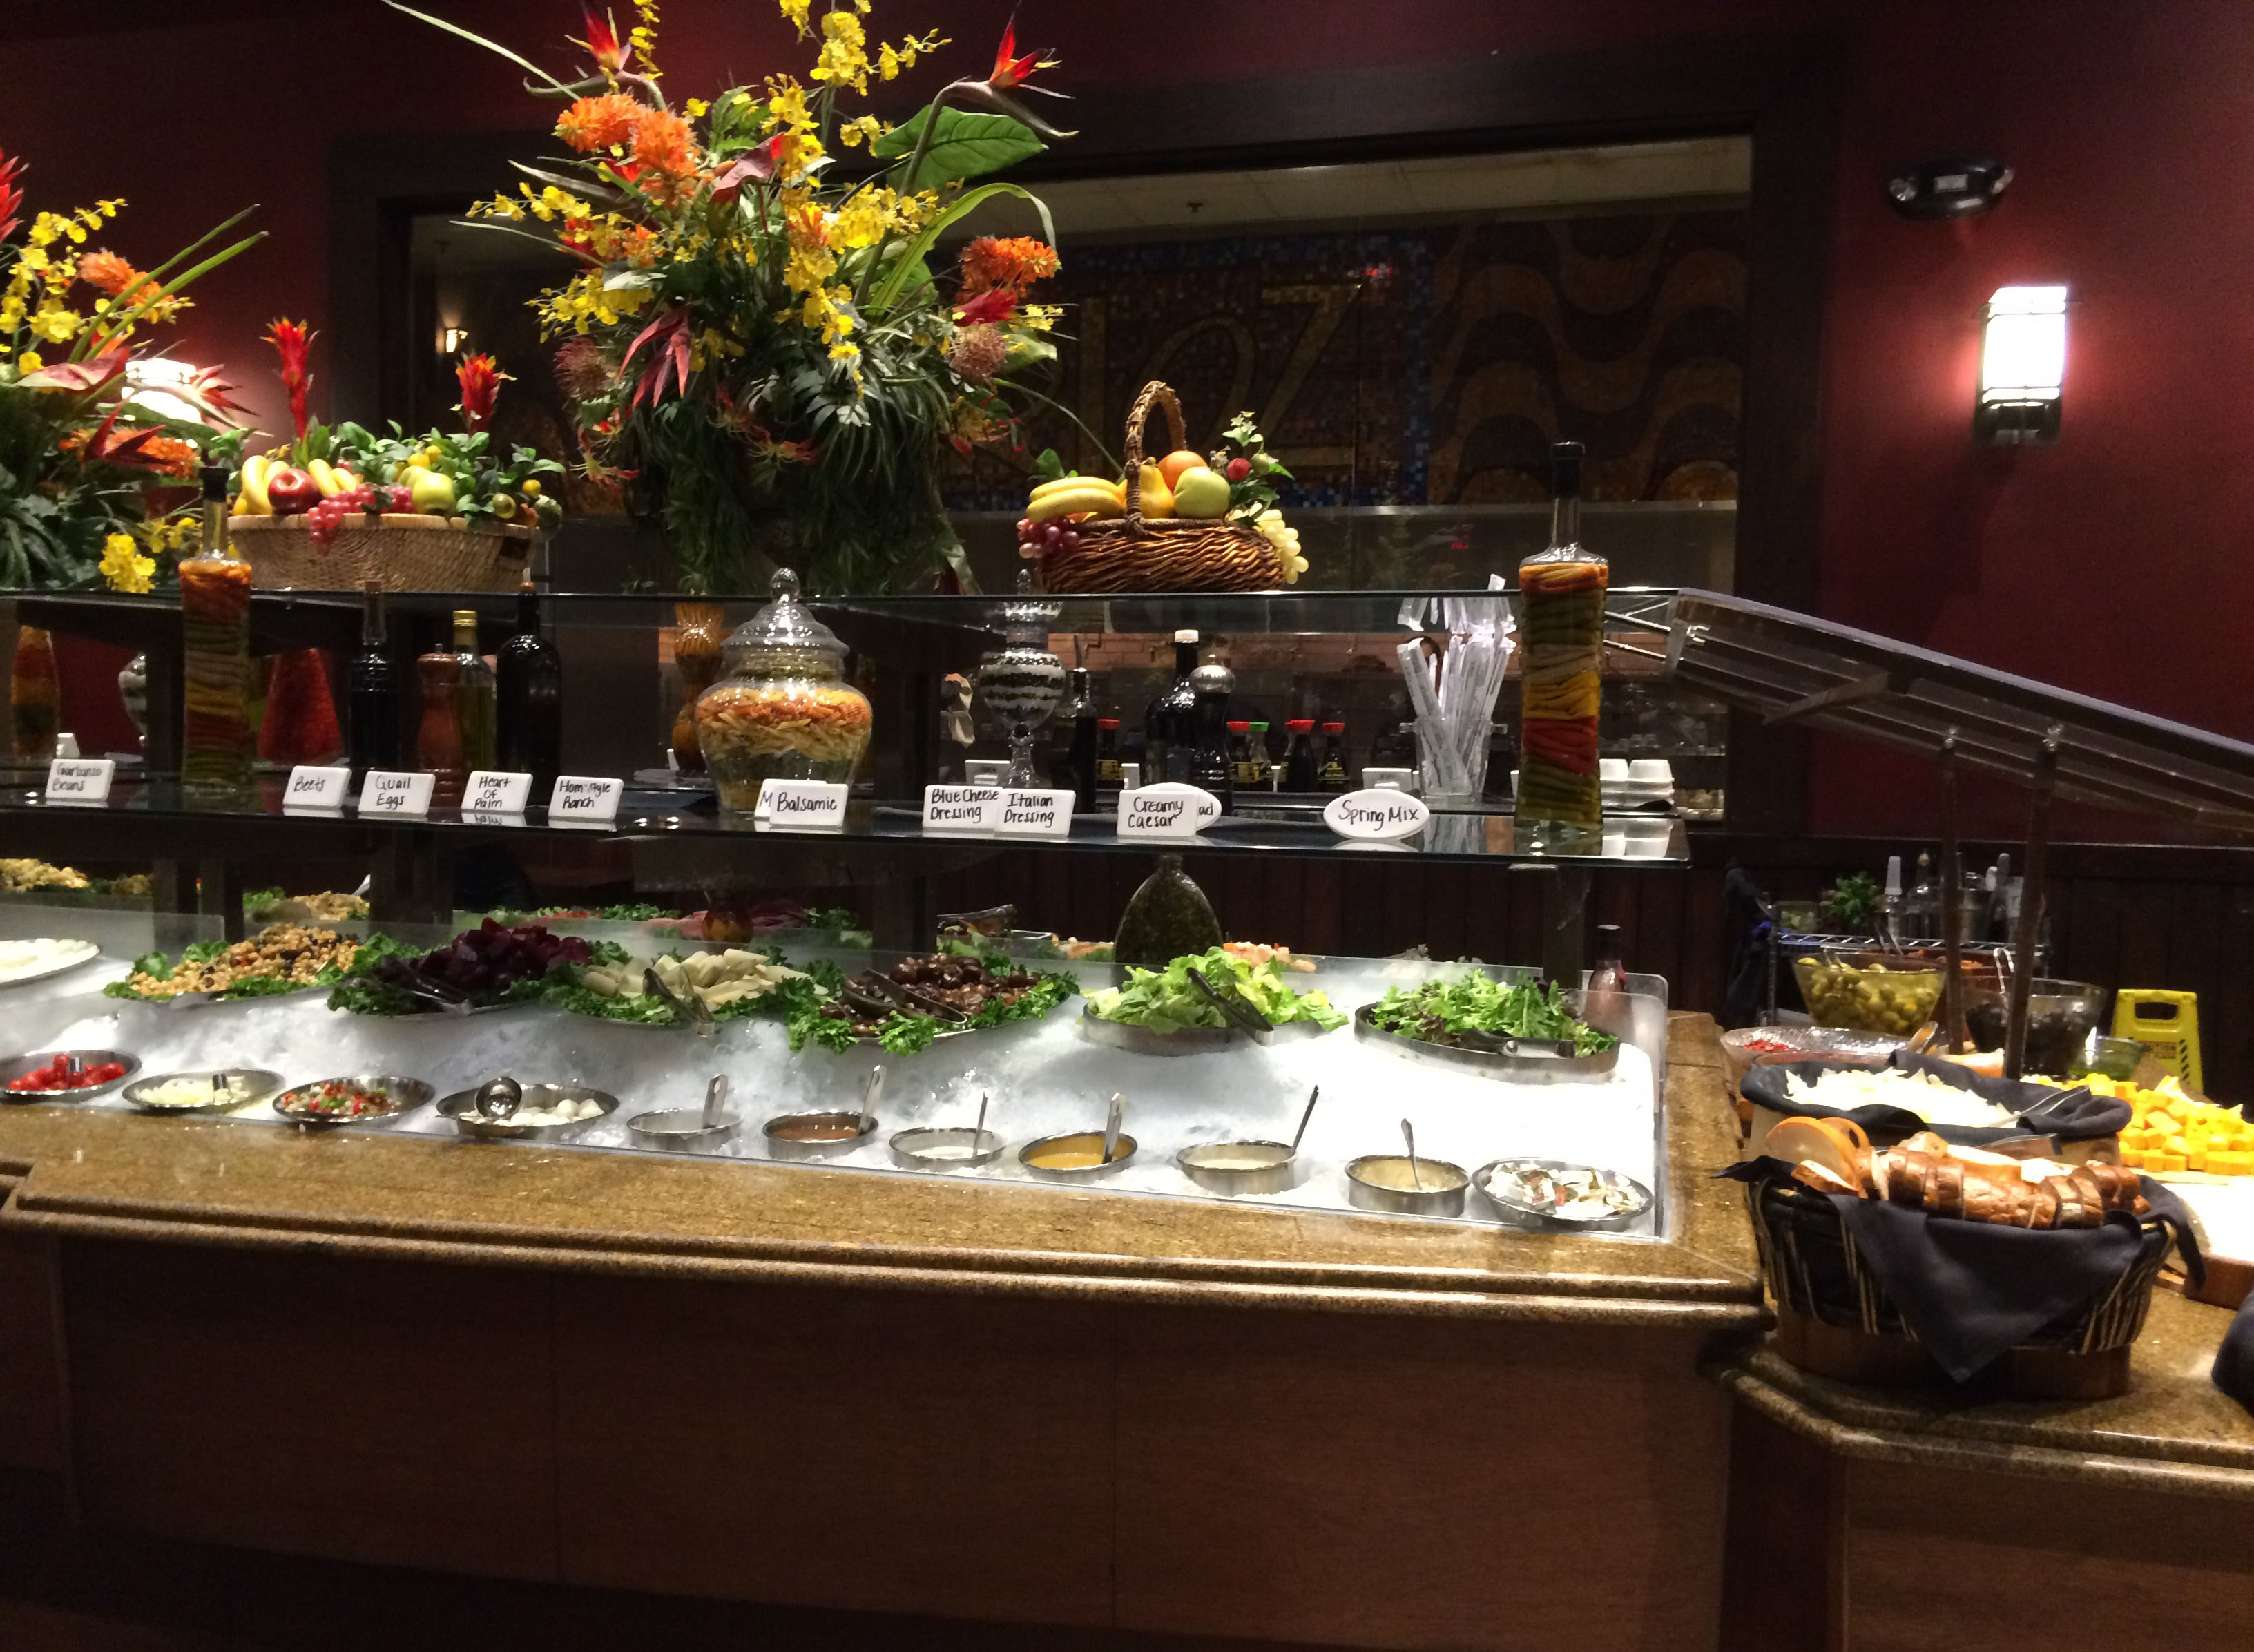 The salad bar at Rioz is extremely impressive.